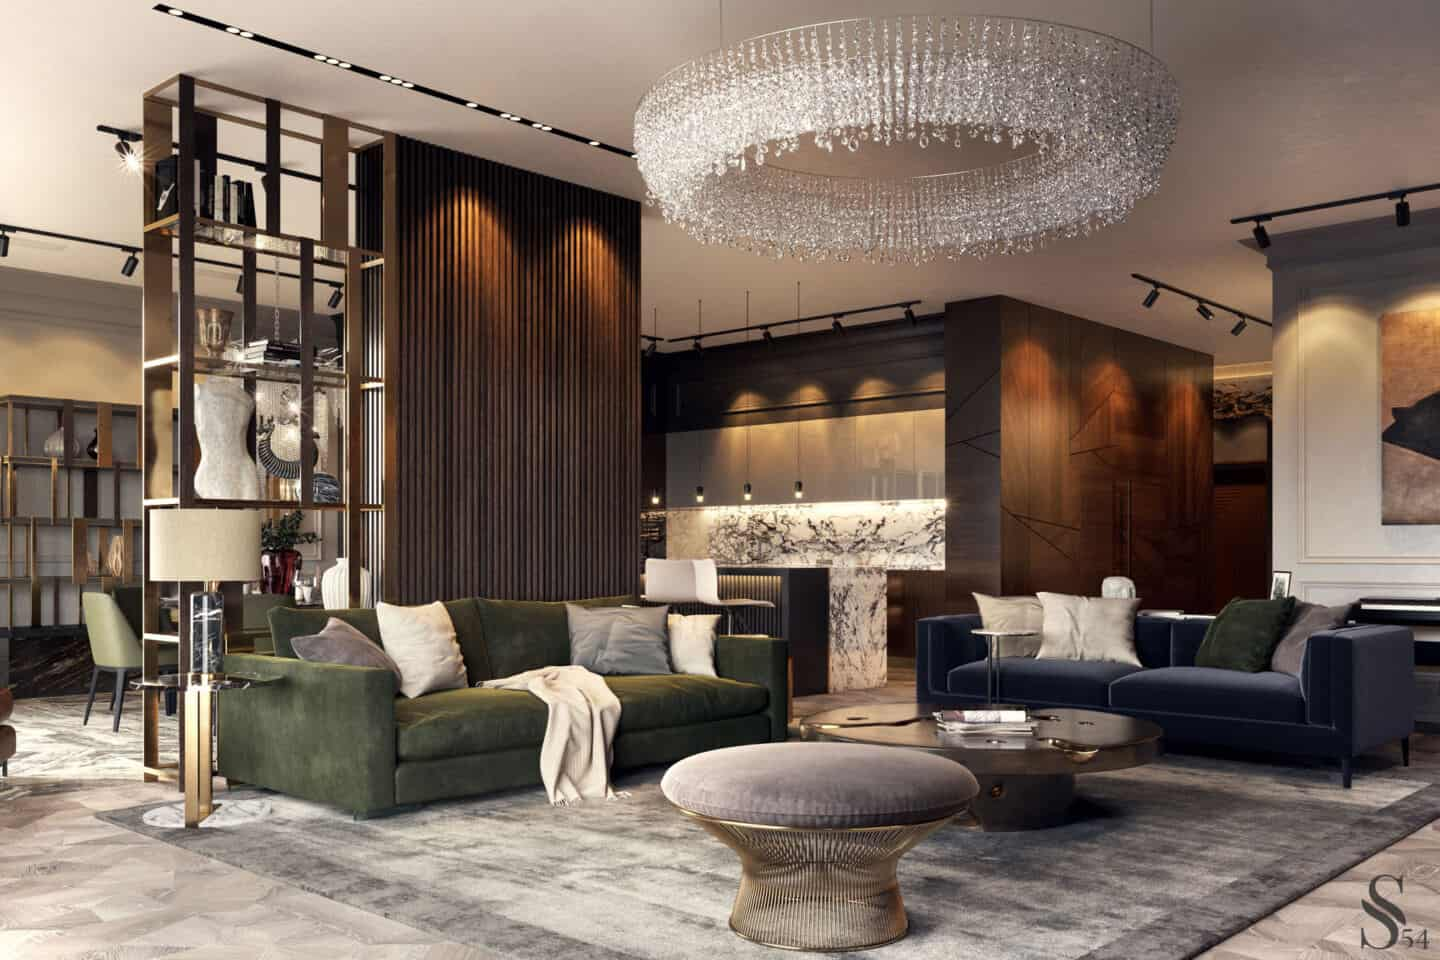 How to decorate like a Millionaire. Luxury detailed living room by Covet House